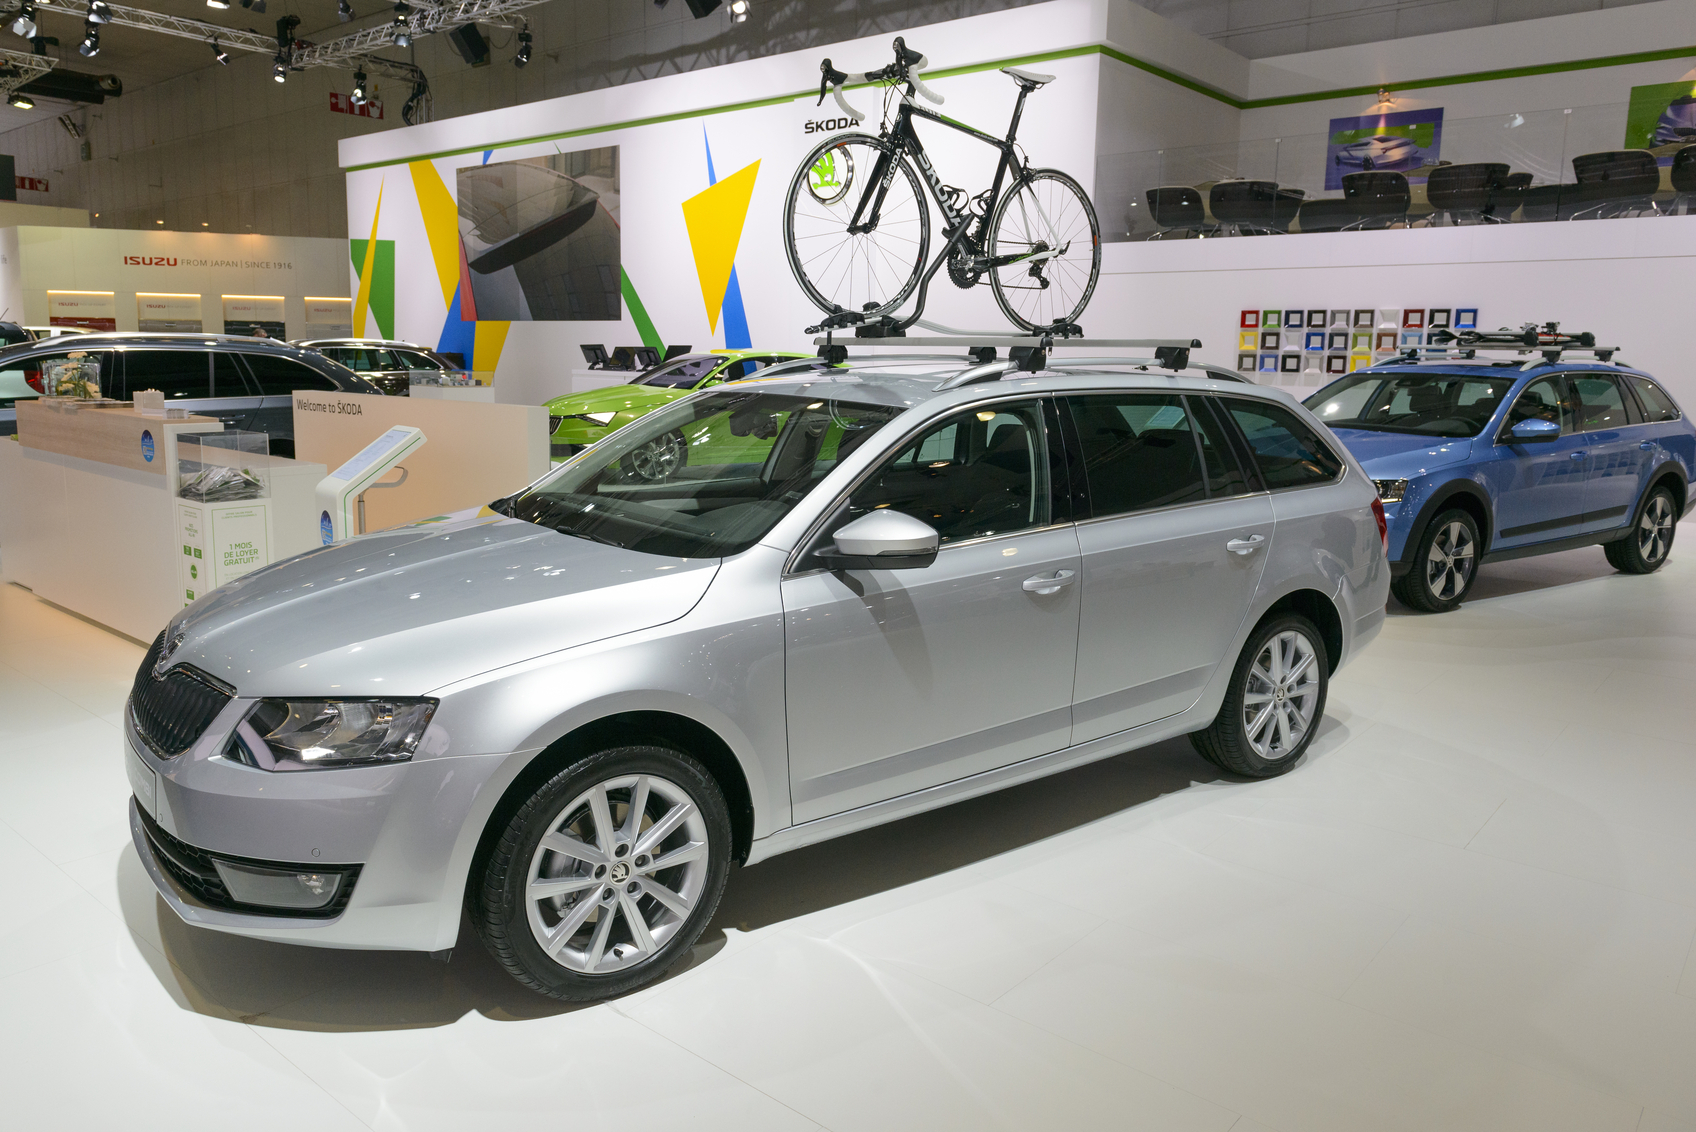 Brussels, Belgium - January 15, 2015:  Skoda Octavia Combi station wagon on display during the 2015 Brussels motor show. People in the background are looking at the cars.